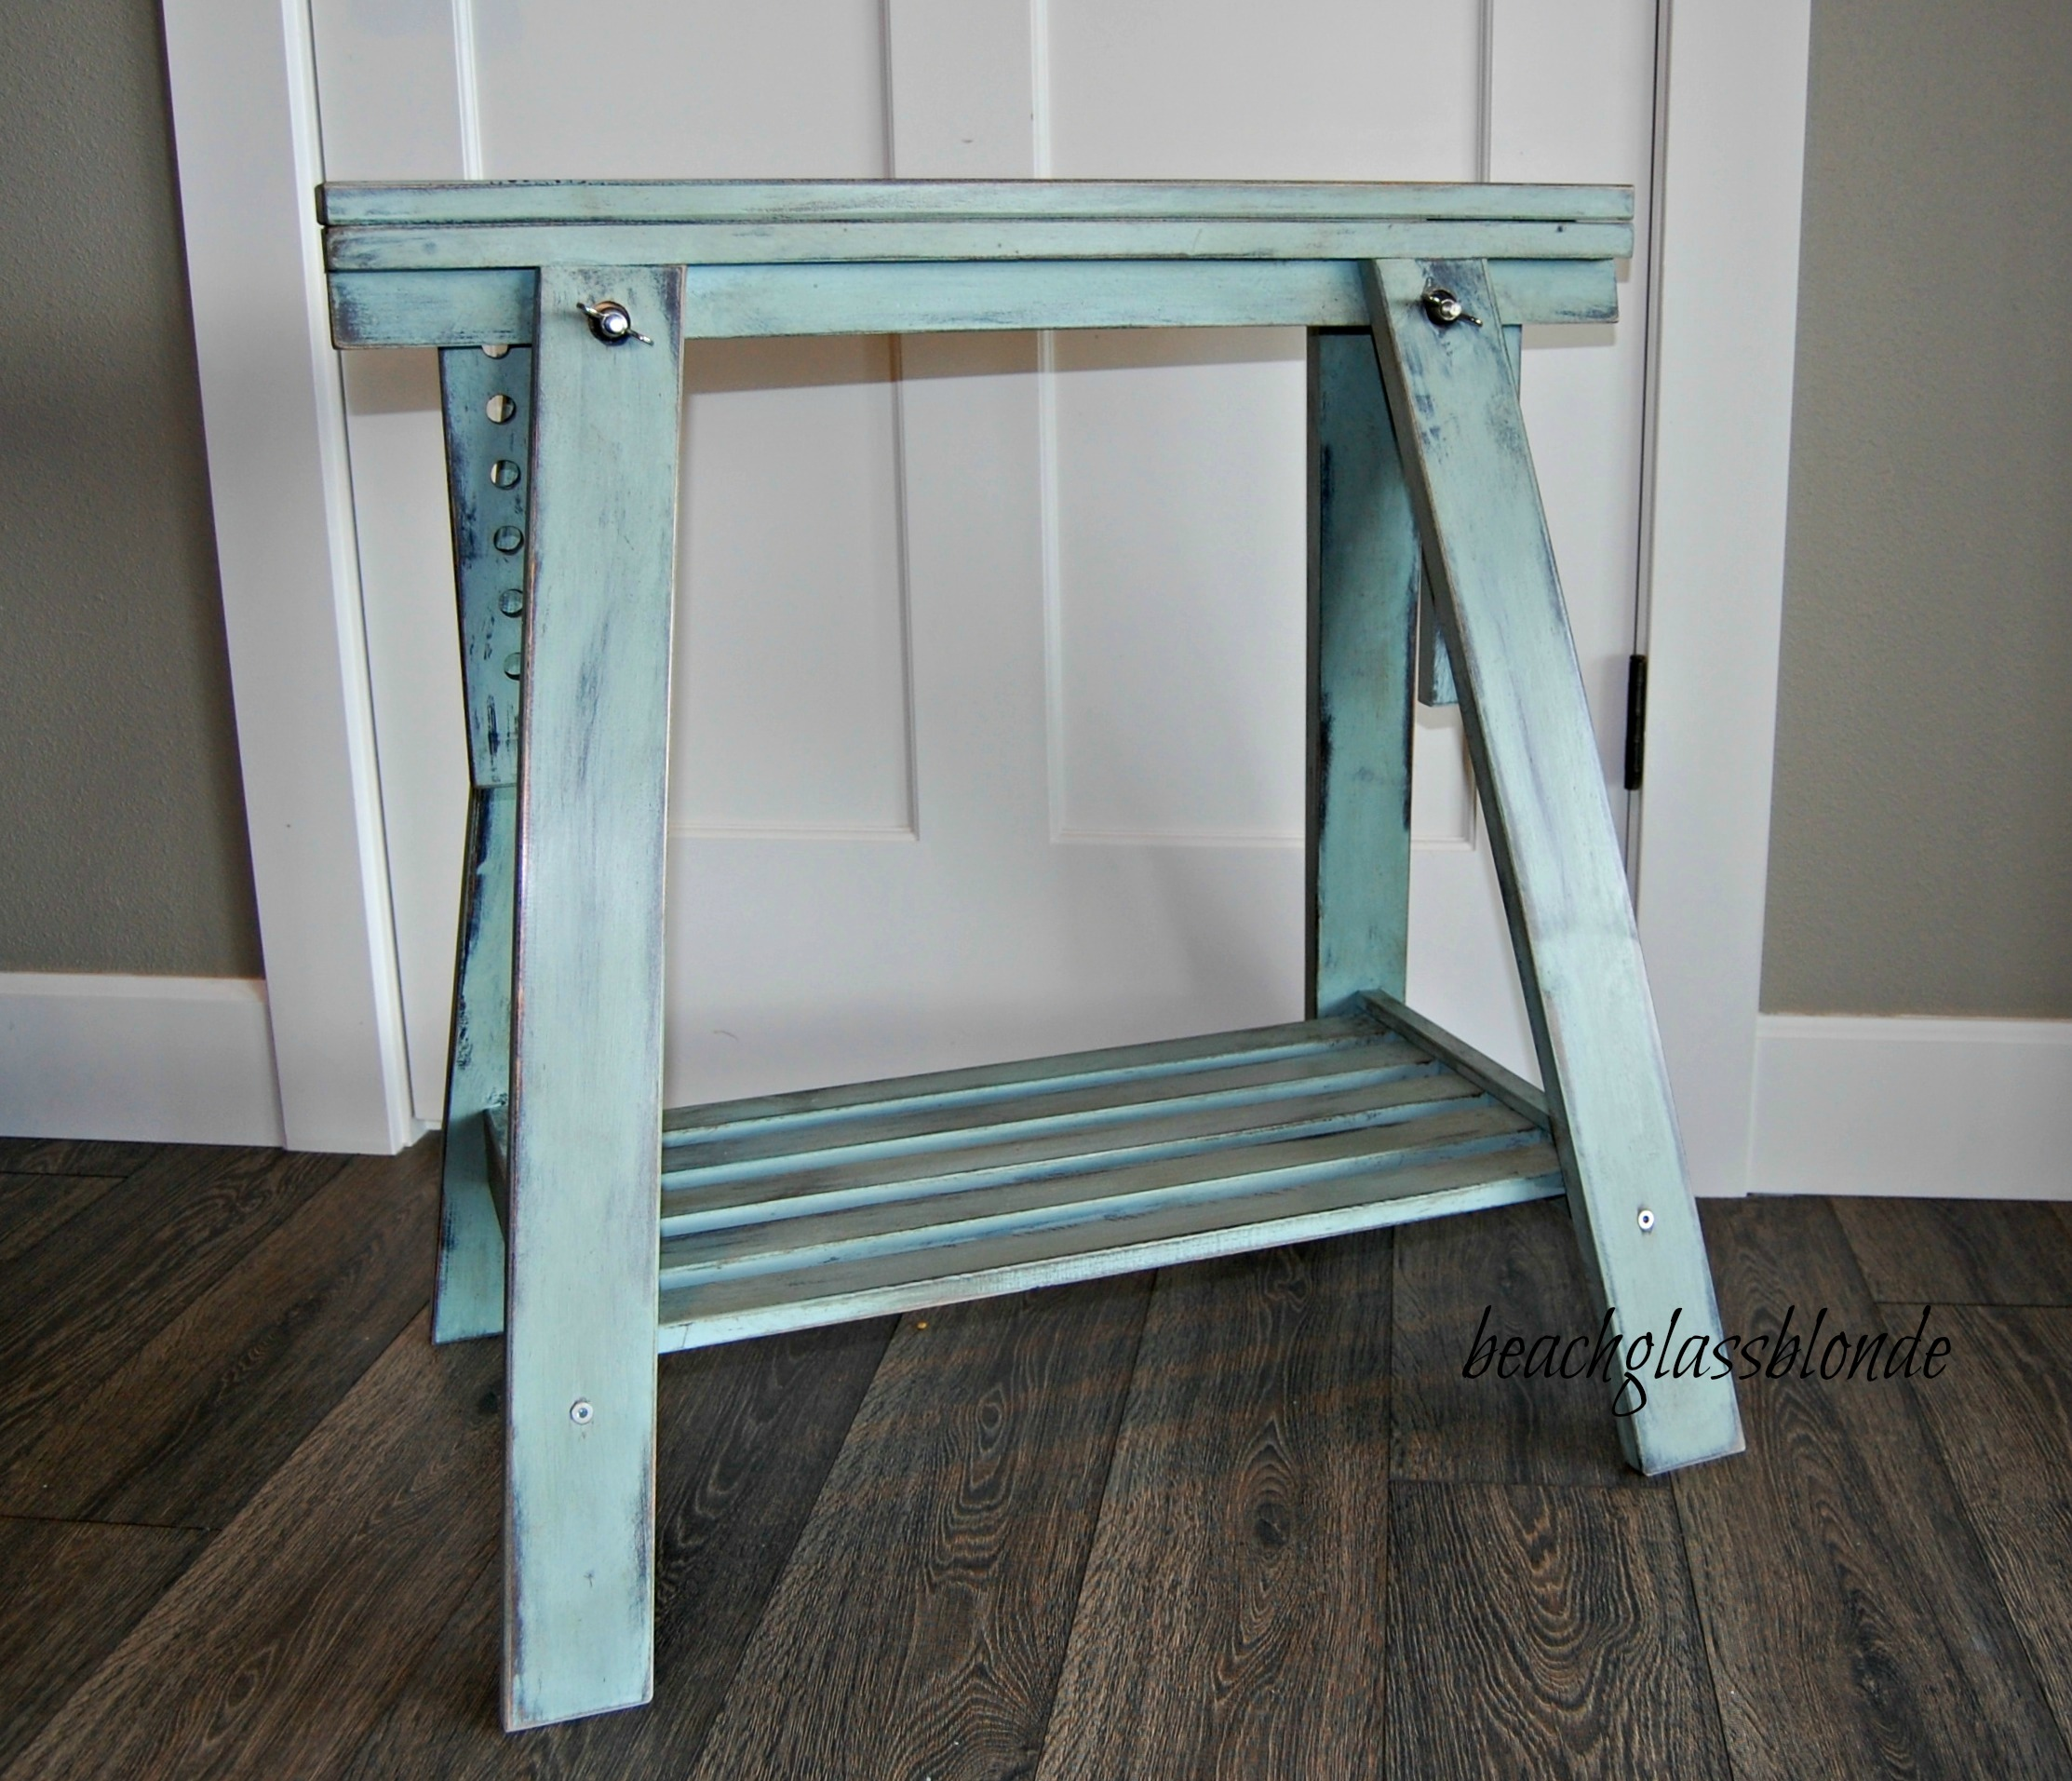 Pdf Plans Diy Sawhorse Desk Plans Download How To Date A. Table And Chairs Kids. White 6 Drawer Chest. Hospital Table Tray. Antique Brass Table Lamp. Handmade Desk Calendar. Kitchen Table Placemats. School Desk Cost. Chest Of Drawers Tall Thin